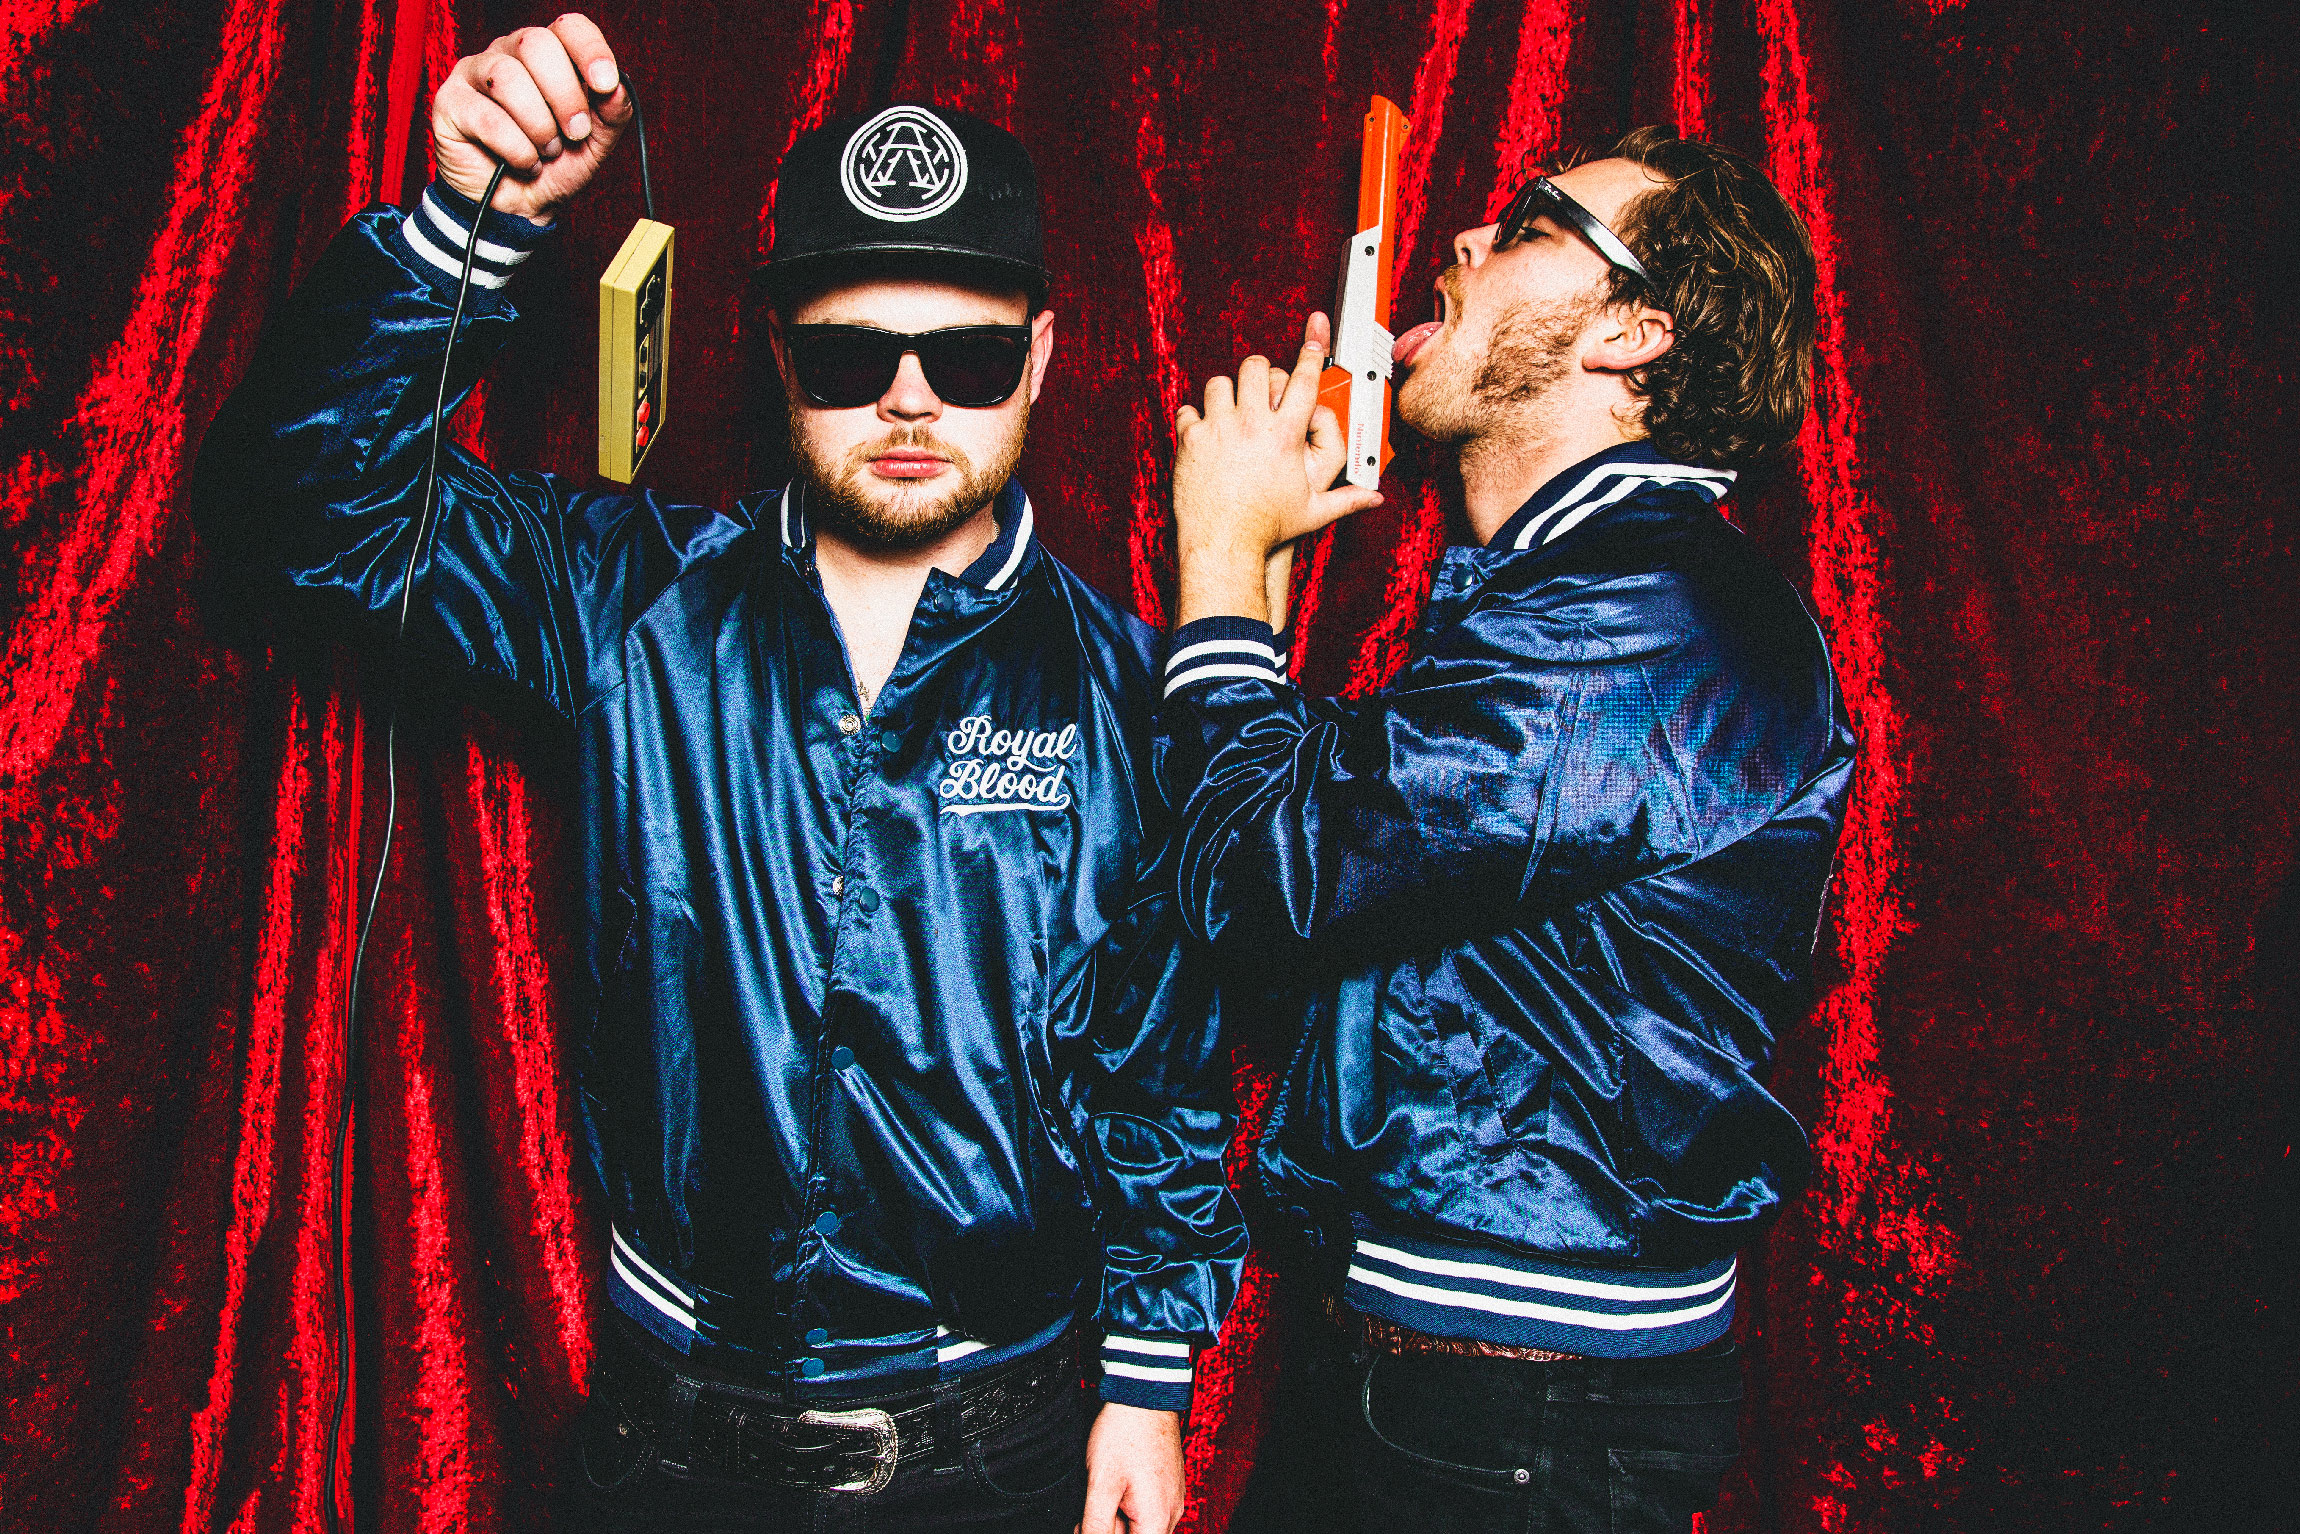 Royal Blood are teasing something with a car